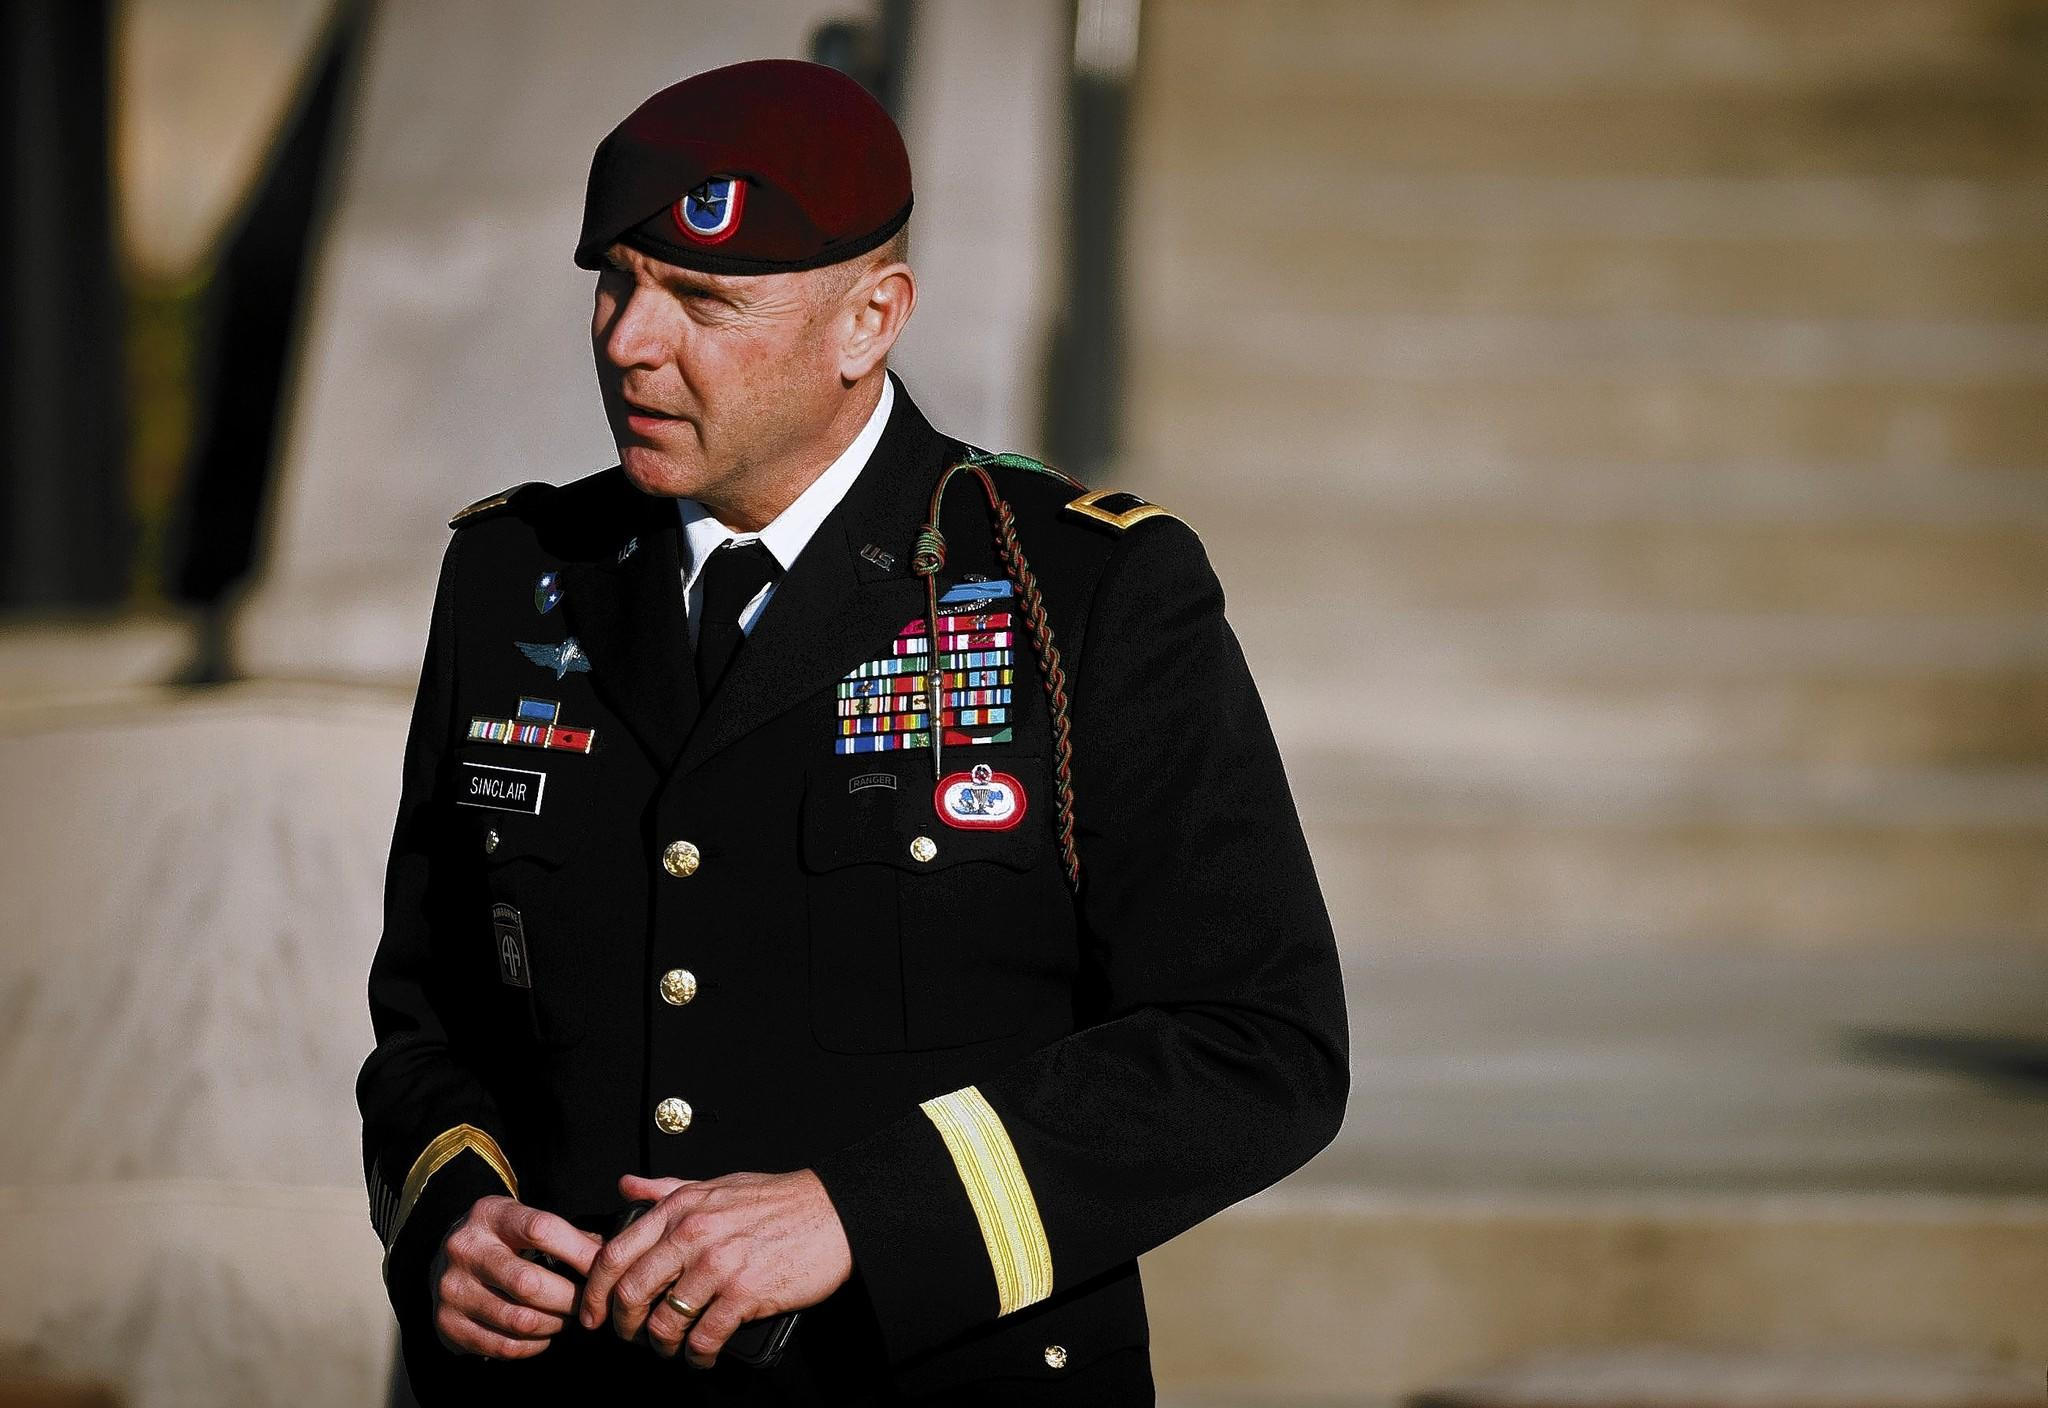 Army Brig. Gen. Jeffrey A. Sinclair has been accused of sexually assaulting a female subordinate after she tried to end their affair.